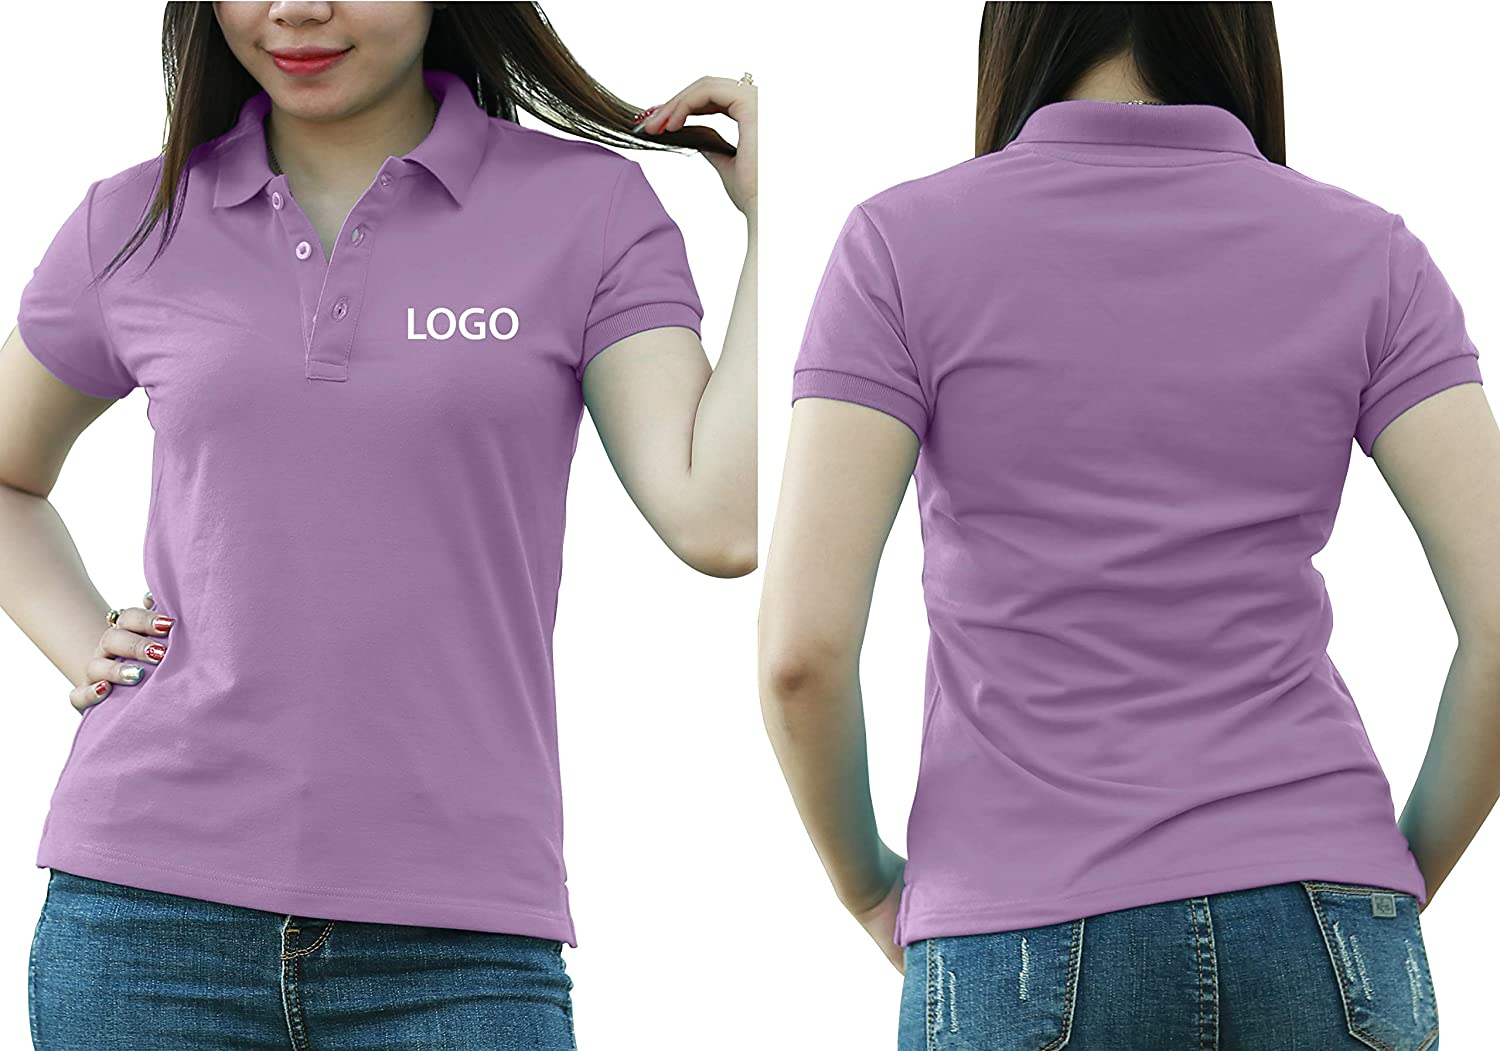 Add Custom Personalize Your Logo Text. Print On Polo & T-Shirt with Multi Sides –Sizes - Colors. Pack of 10 Purple